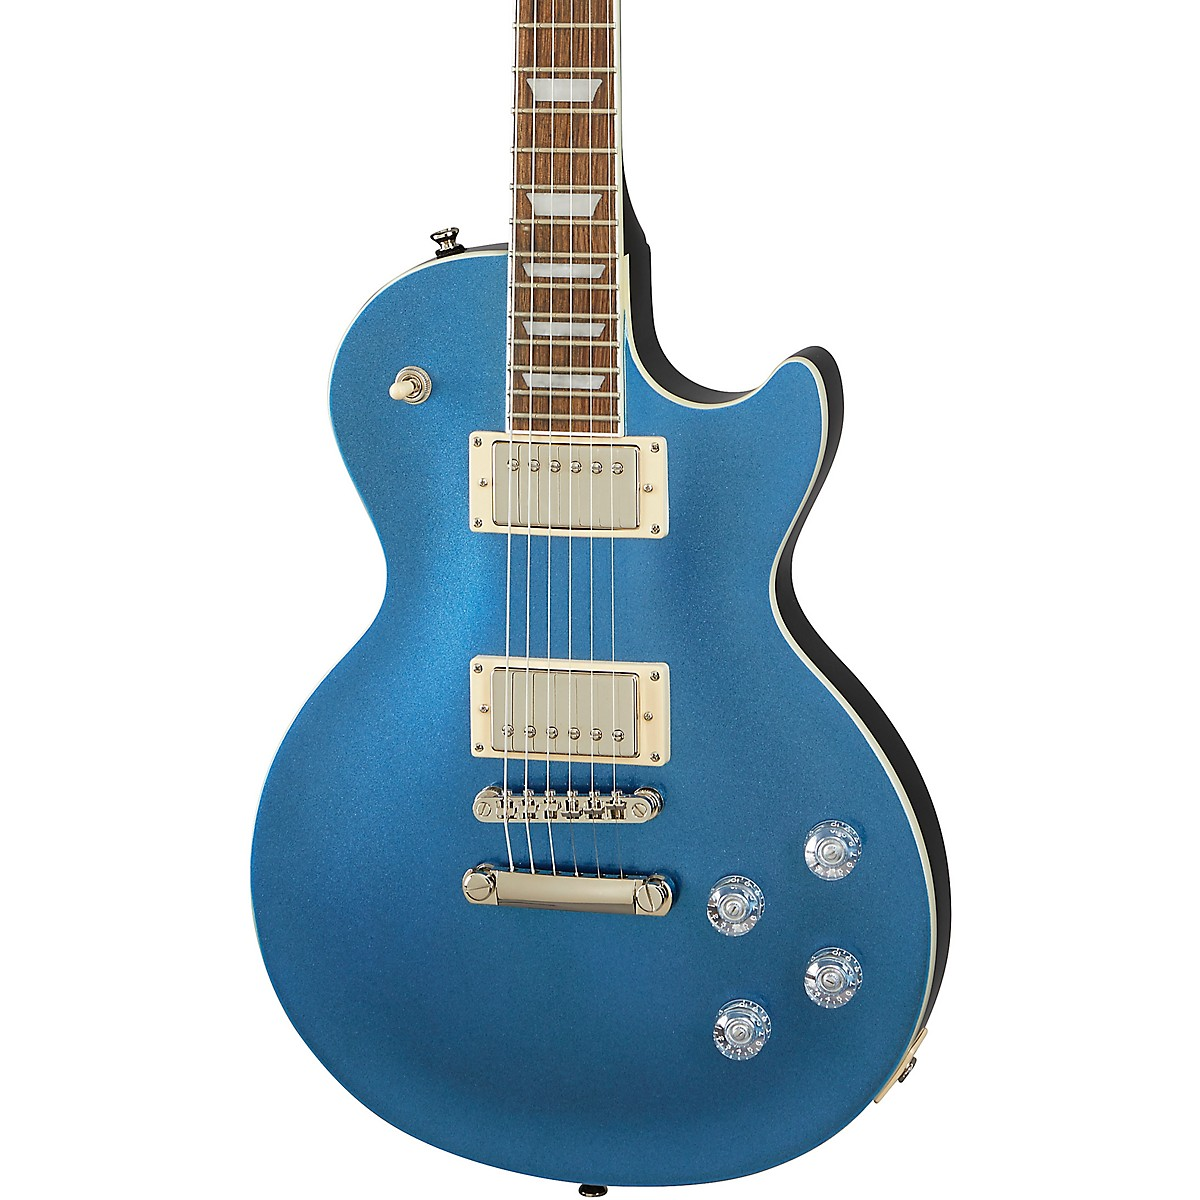 Epiphone Les Paul Muse Solid Body Electric Guitar